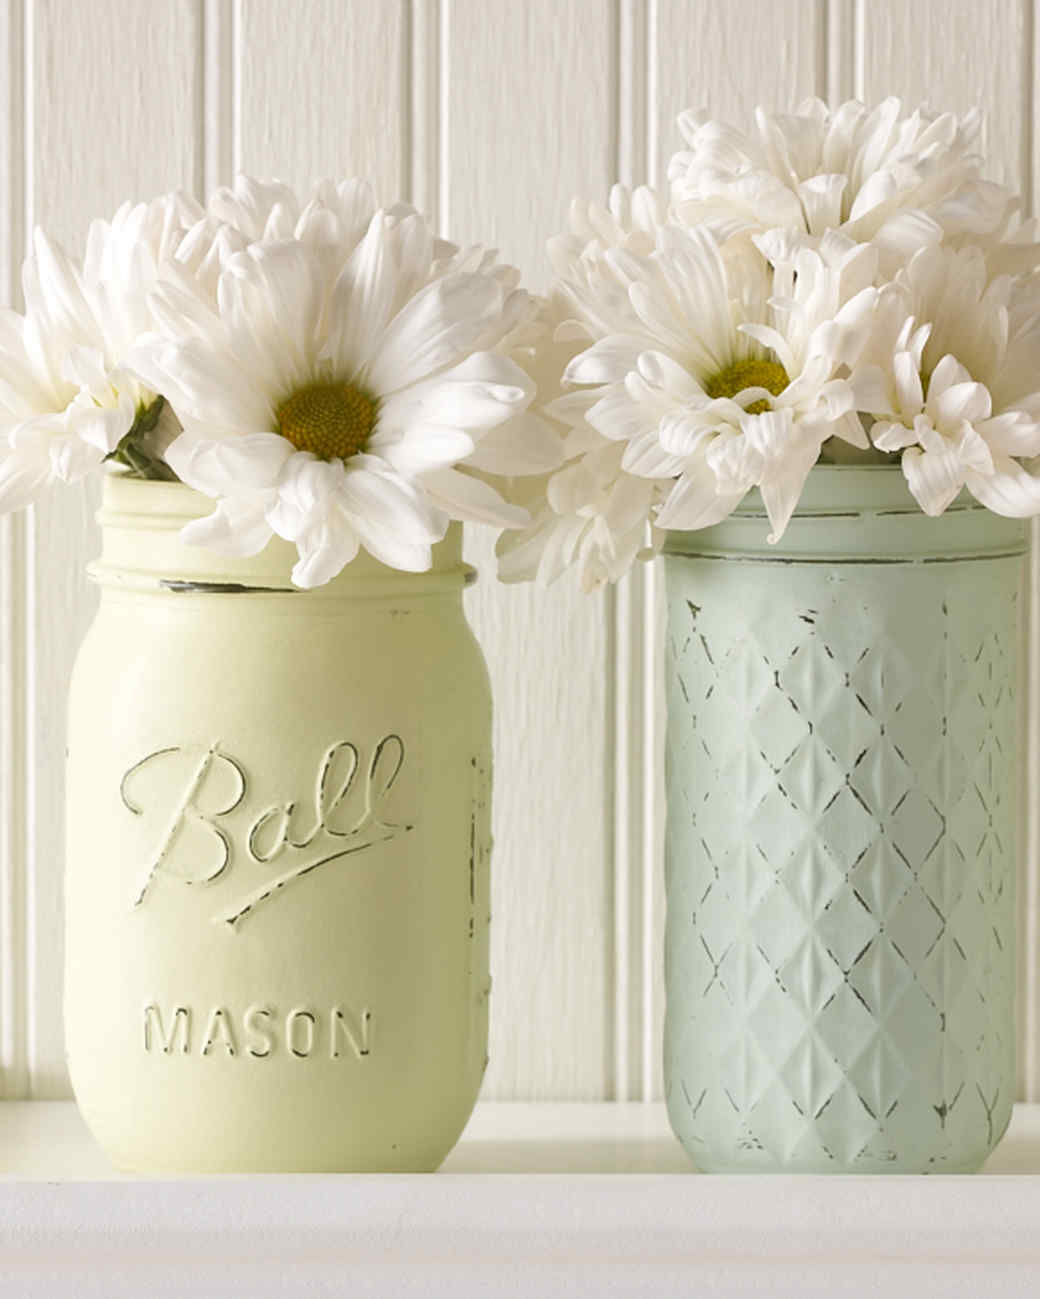 Mason Jars Turned Vintage-Decor Vases | Martha Stewart